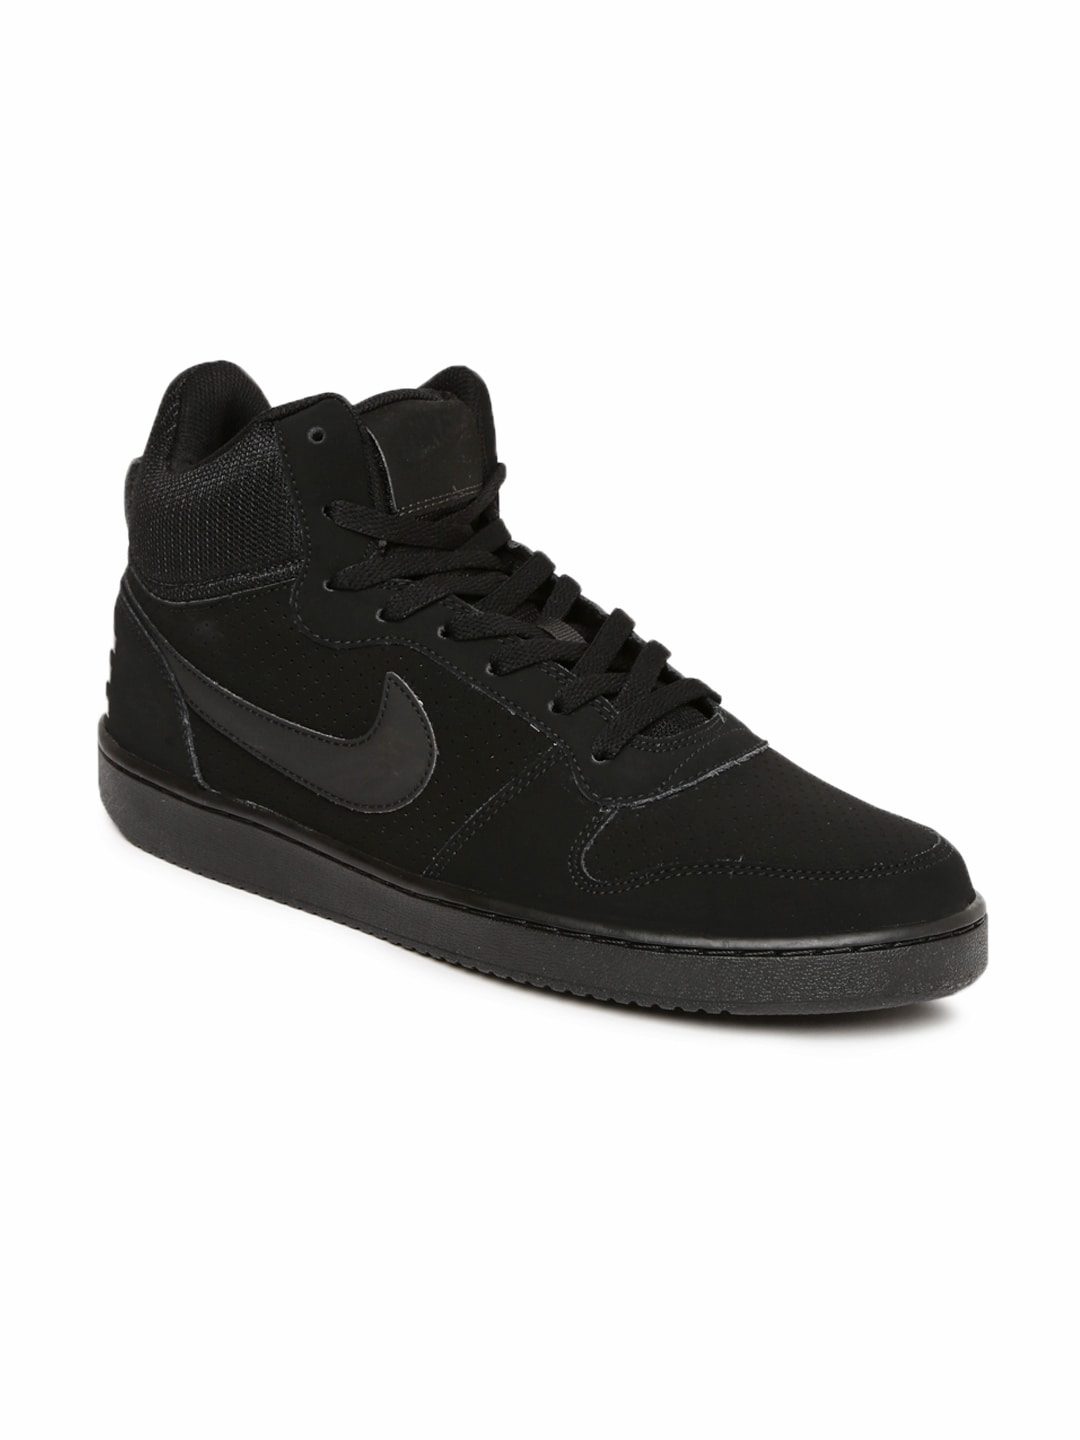 9361577f88 Nike Black Casual Shoes - Buy Nike Black Casual Shoes online in India